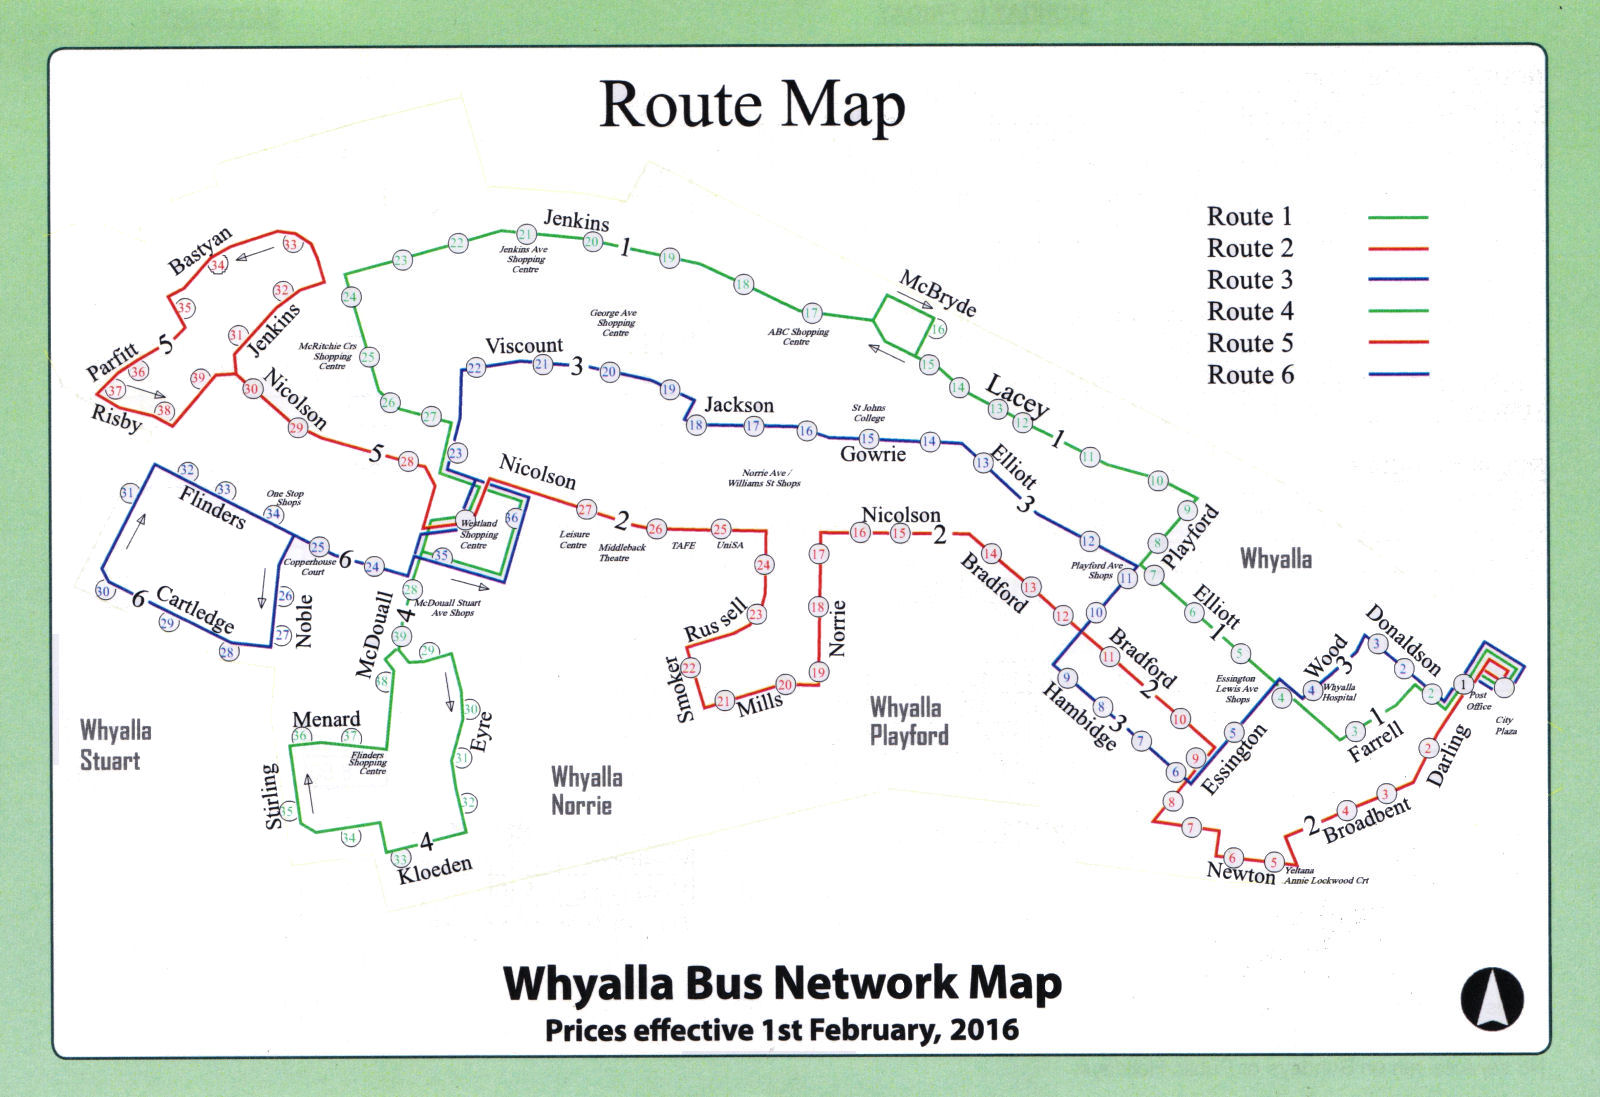 Whyalla Bus Service - Route Map